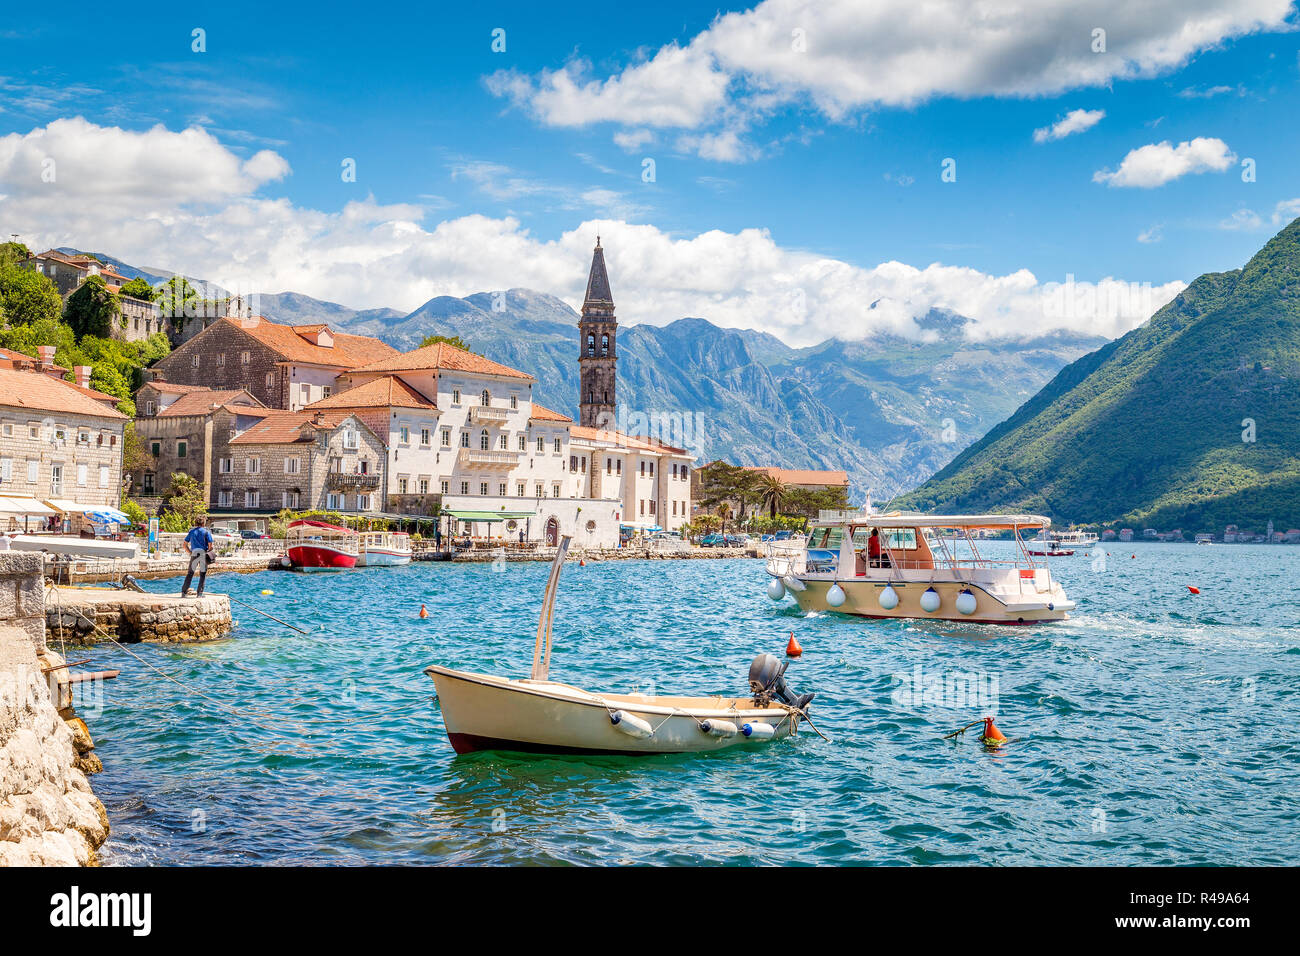 Historic town of Perast at Bay of Kotor in summer, Montenegro, Balkans - Stock Image